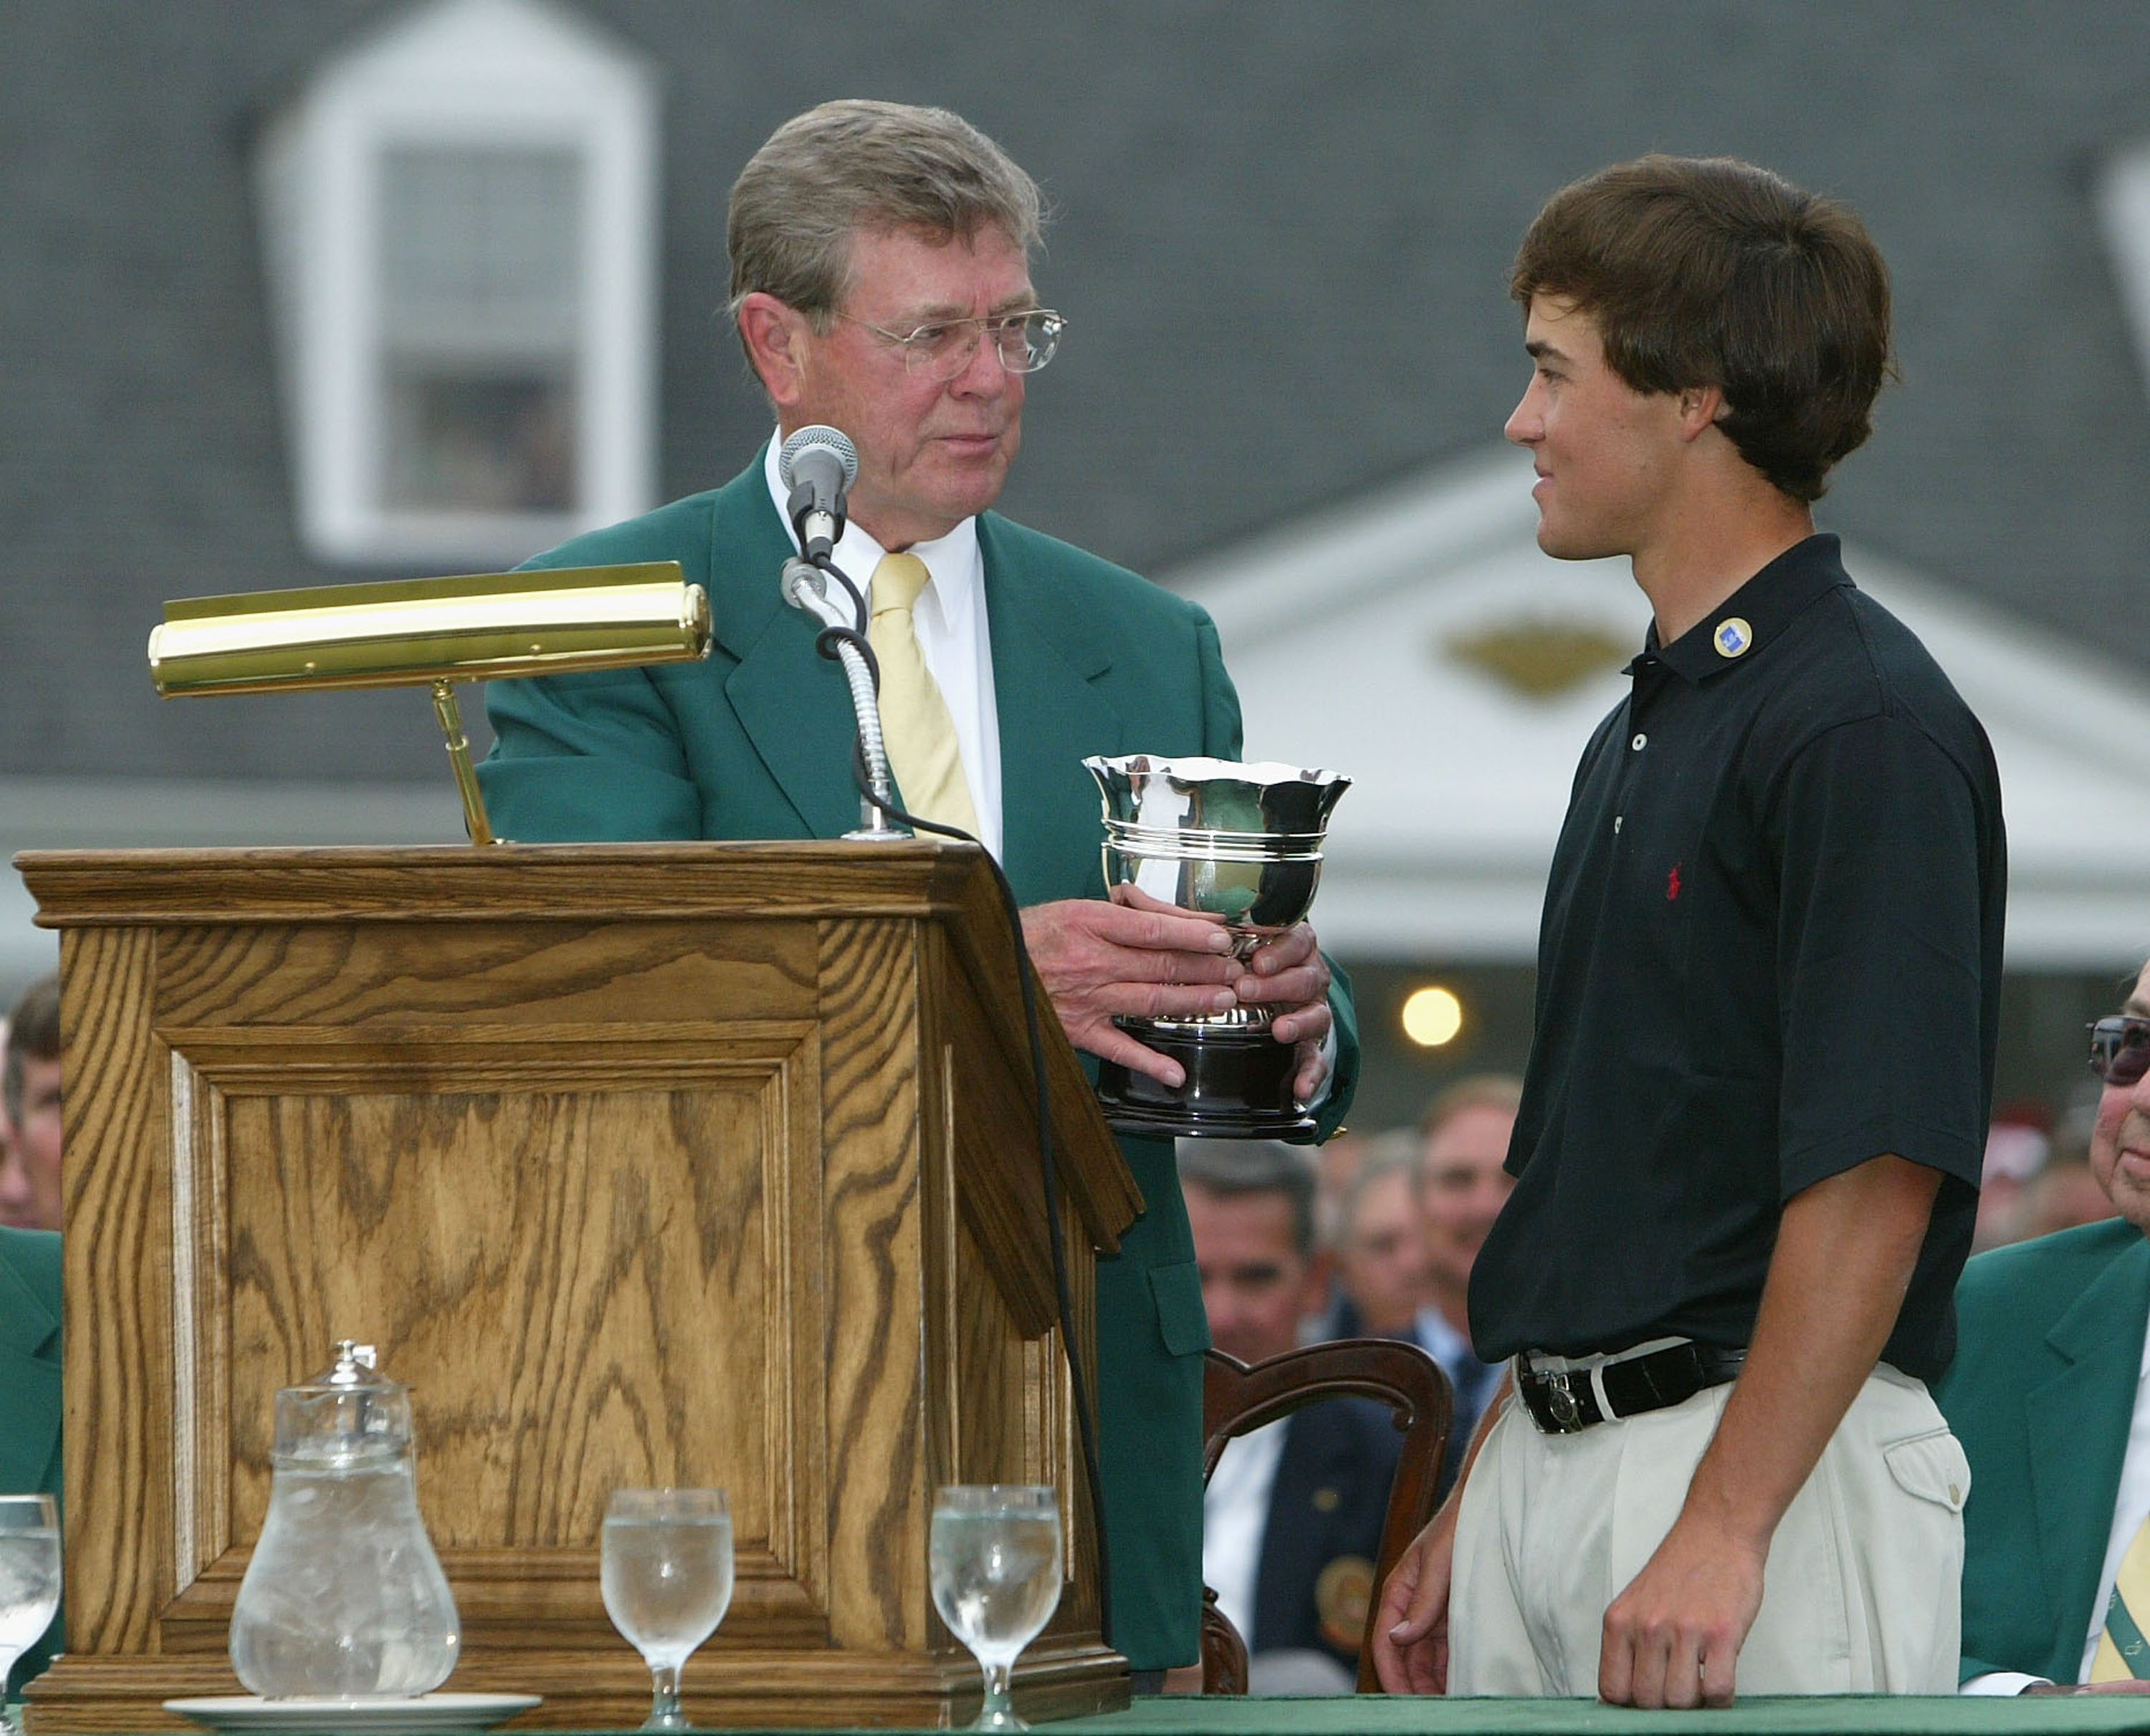 AUGUSTA, GA - APRIL 11:  Casey Wittenberg of the USA is presented with the trophy for the low amateur after the final round of the Masters at the Augusta National Golf Club on April 11, 2004 in Augusta, Georgia.  (Photo by David Cannon/Getty Images)